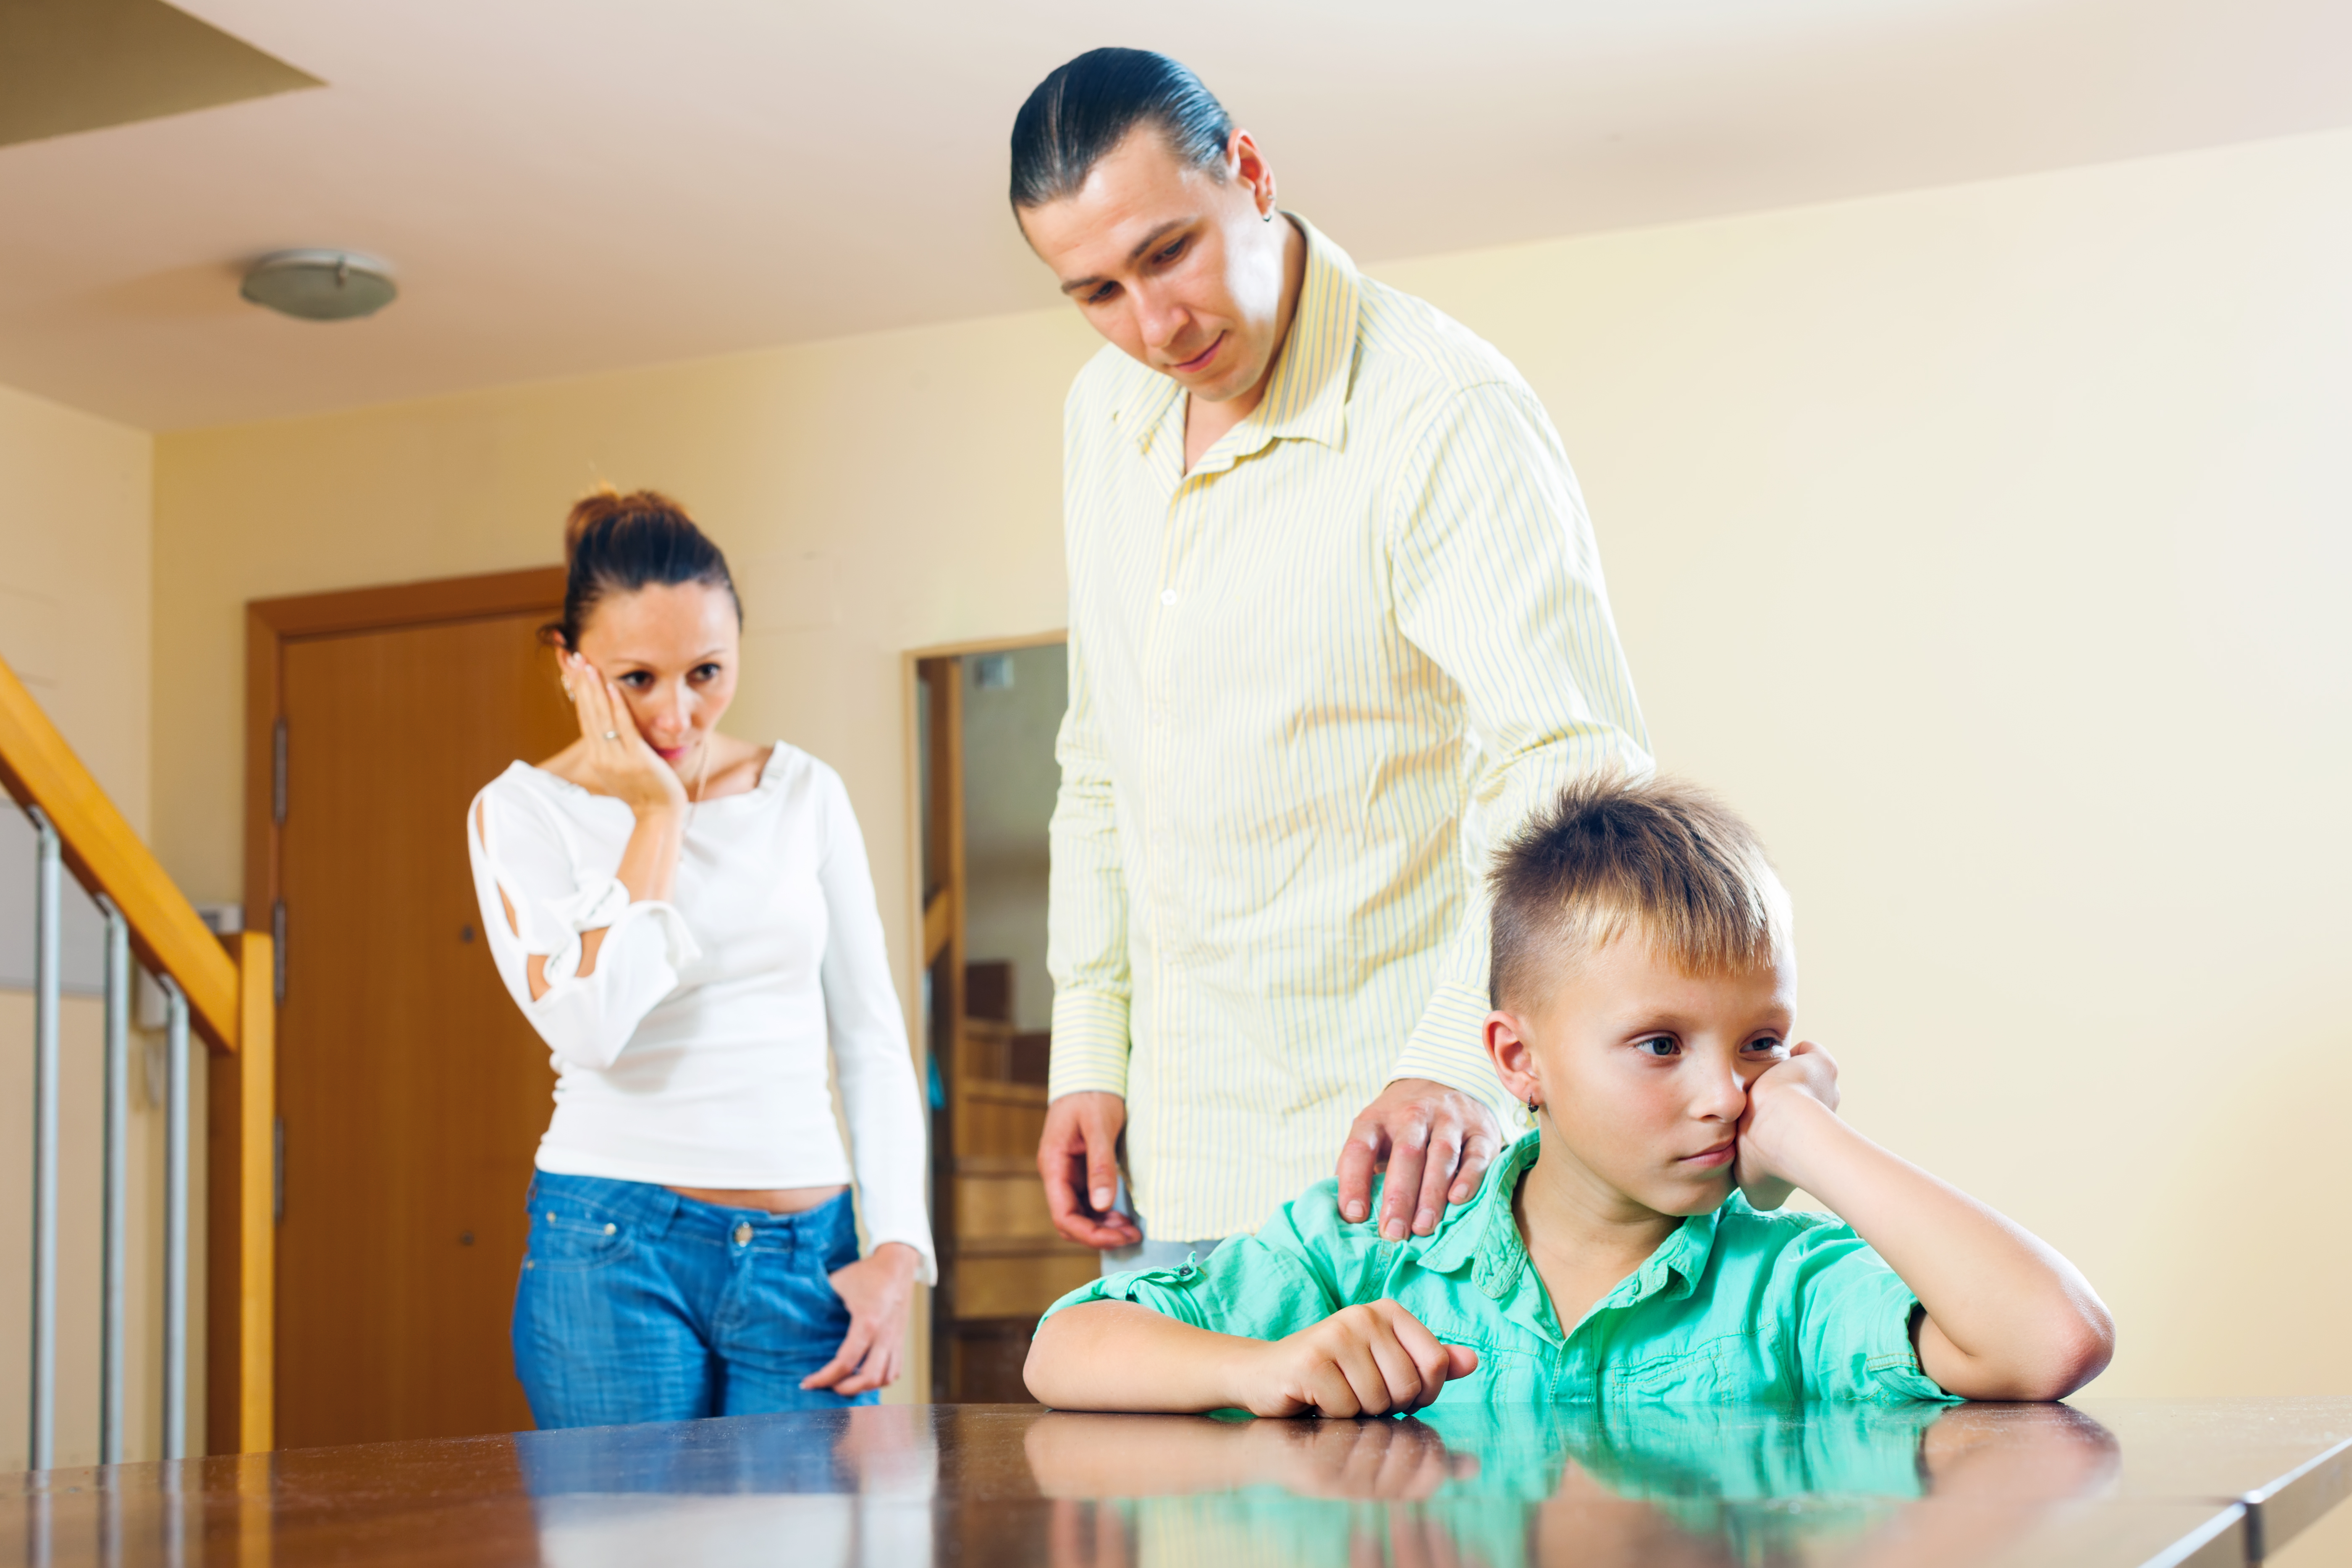 7 Tips For Being A Better Stepparent